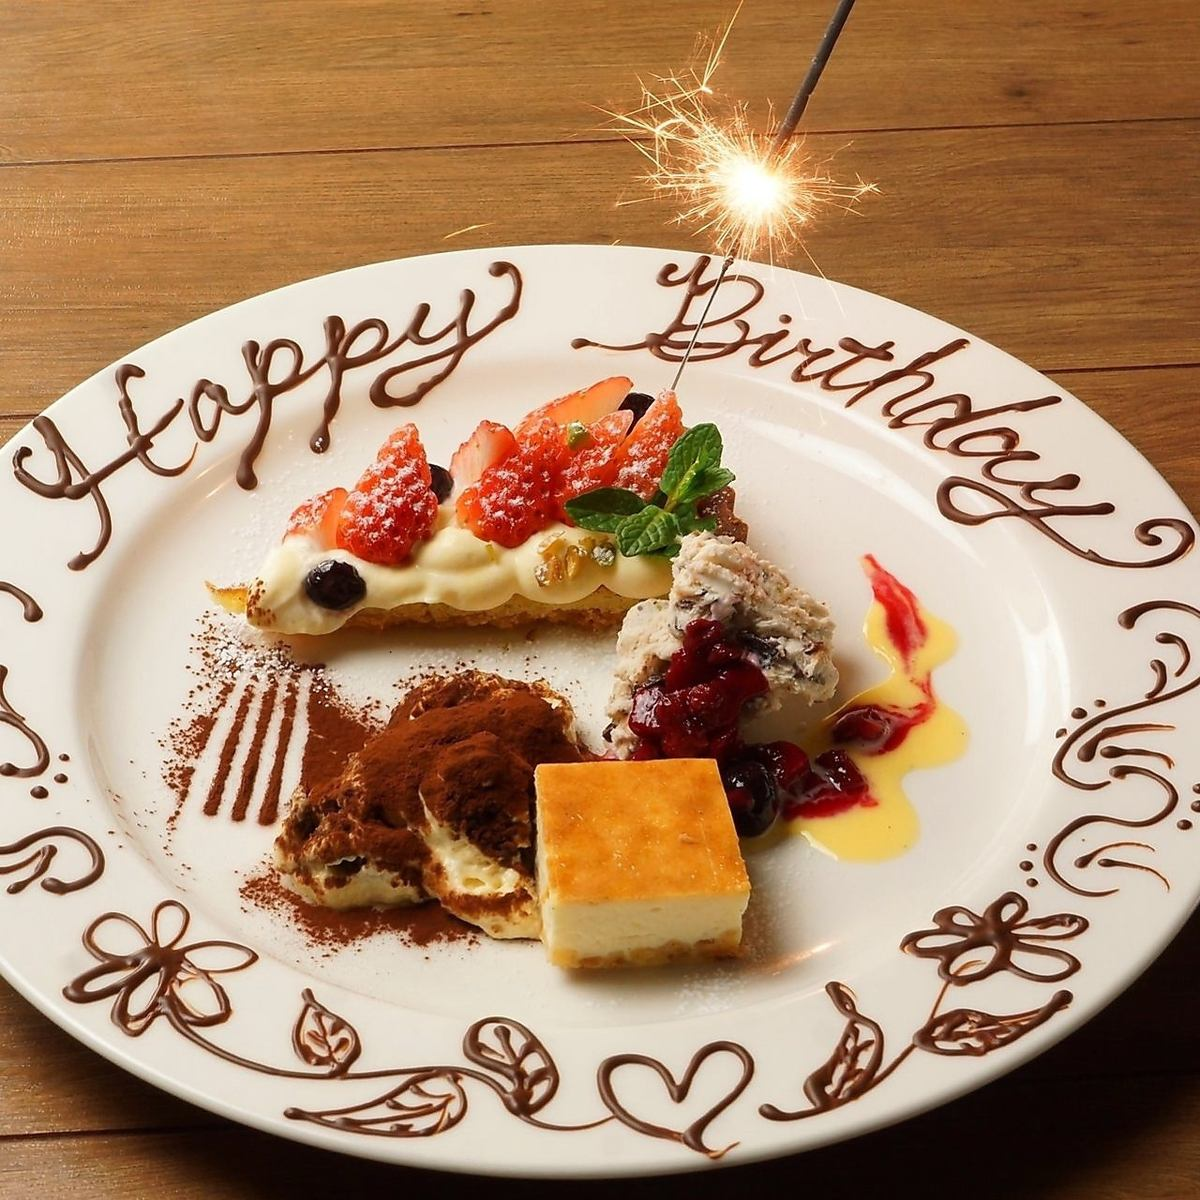 To a surprise on a special day! Dessert plate with coupons 1500 yen → 0 yen